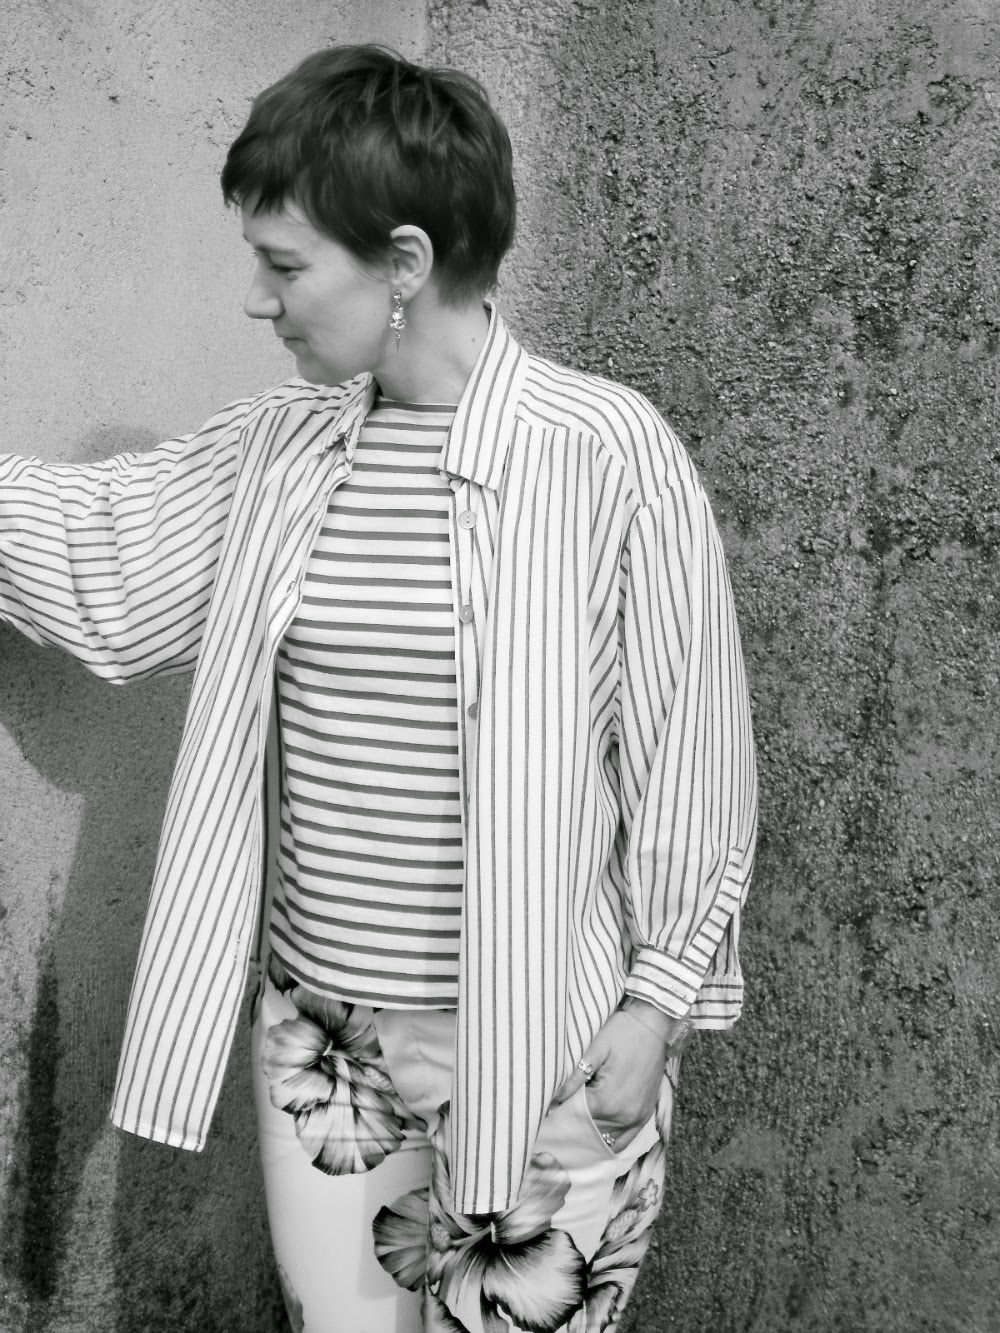 Striped button down shirt meets horizontal striped top meets floral pants | Pattern Mixing Spring Trends - Funky Jungle, fashion and personal style blog